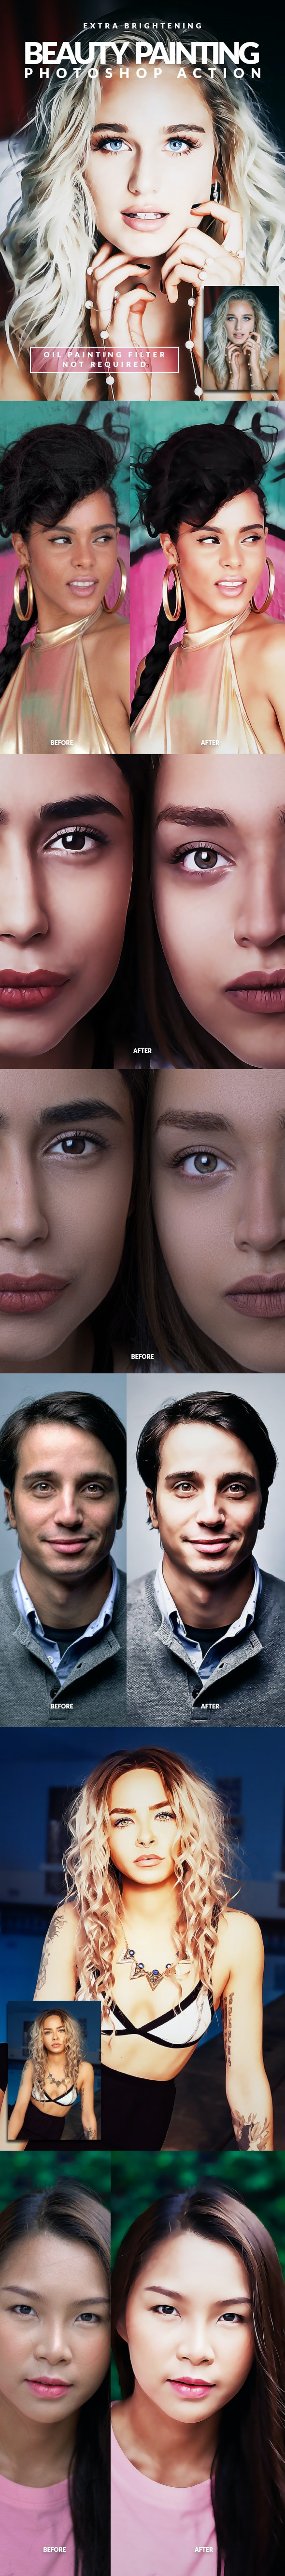 Extra Brightening Beauty Painting Photoshop Action - Photo Effects Actions